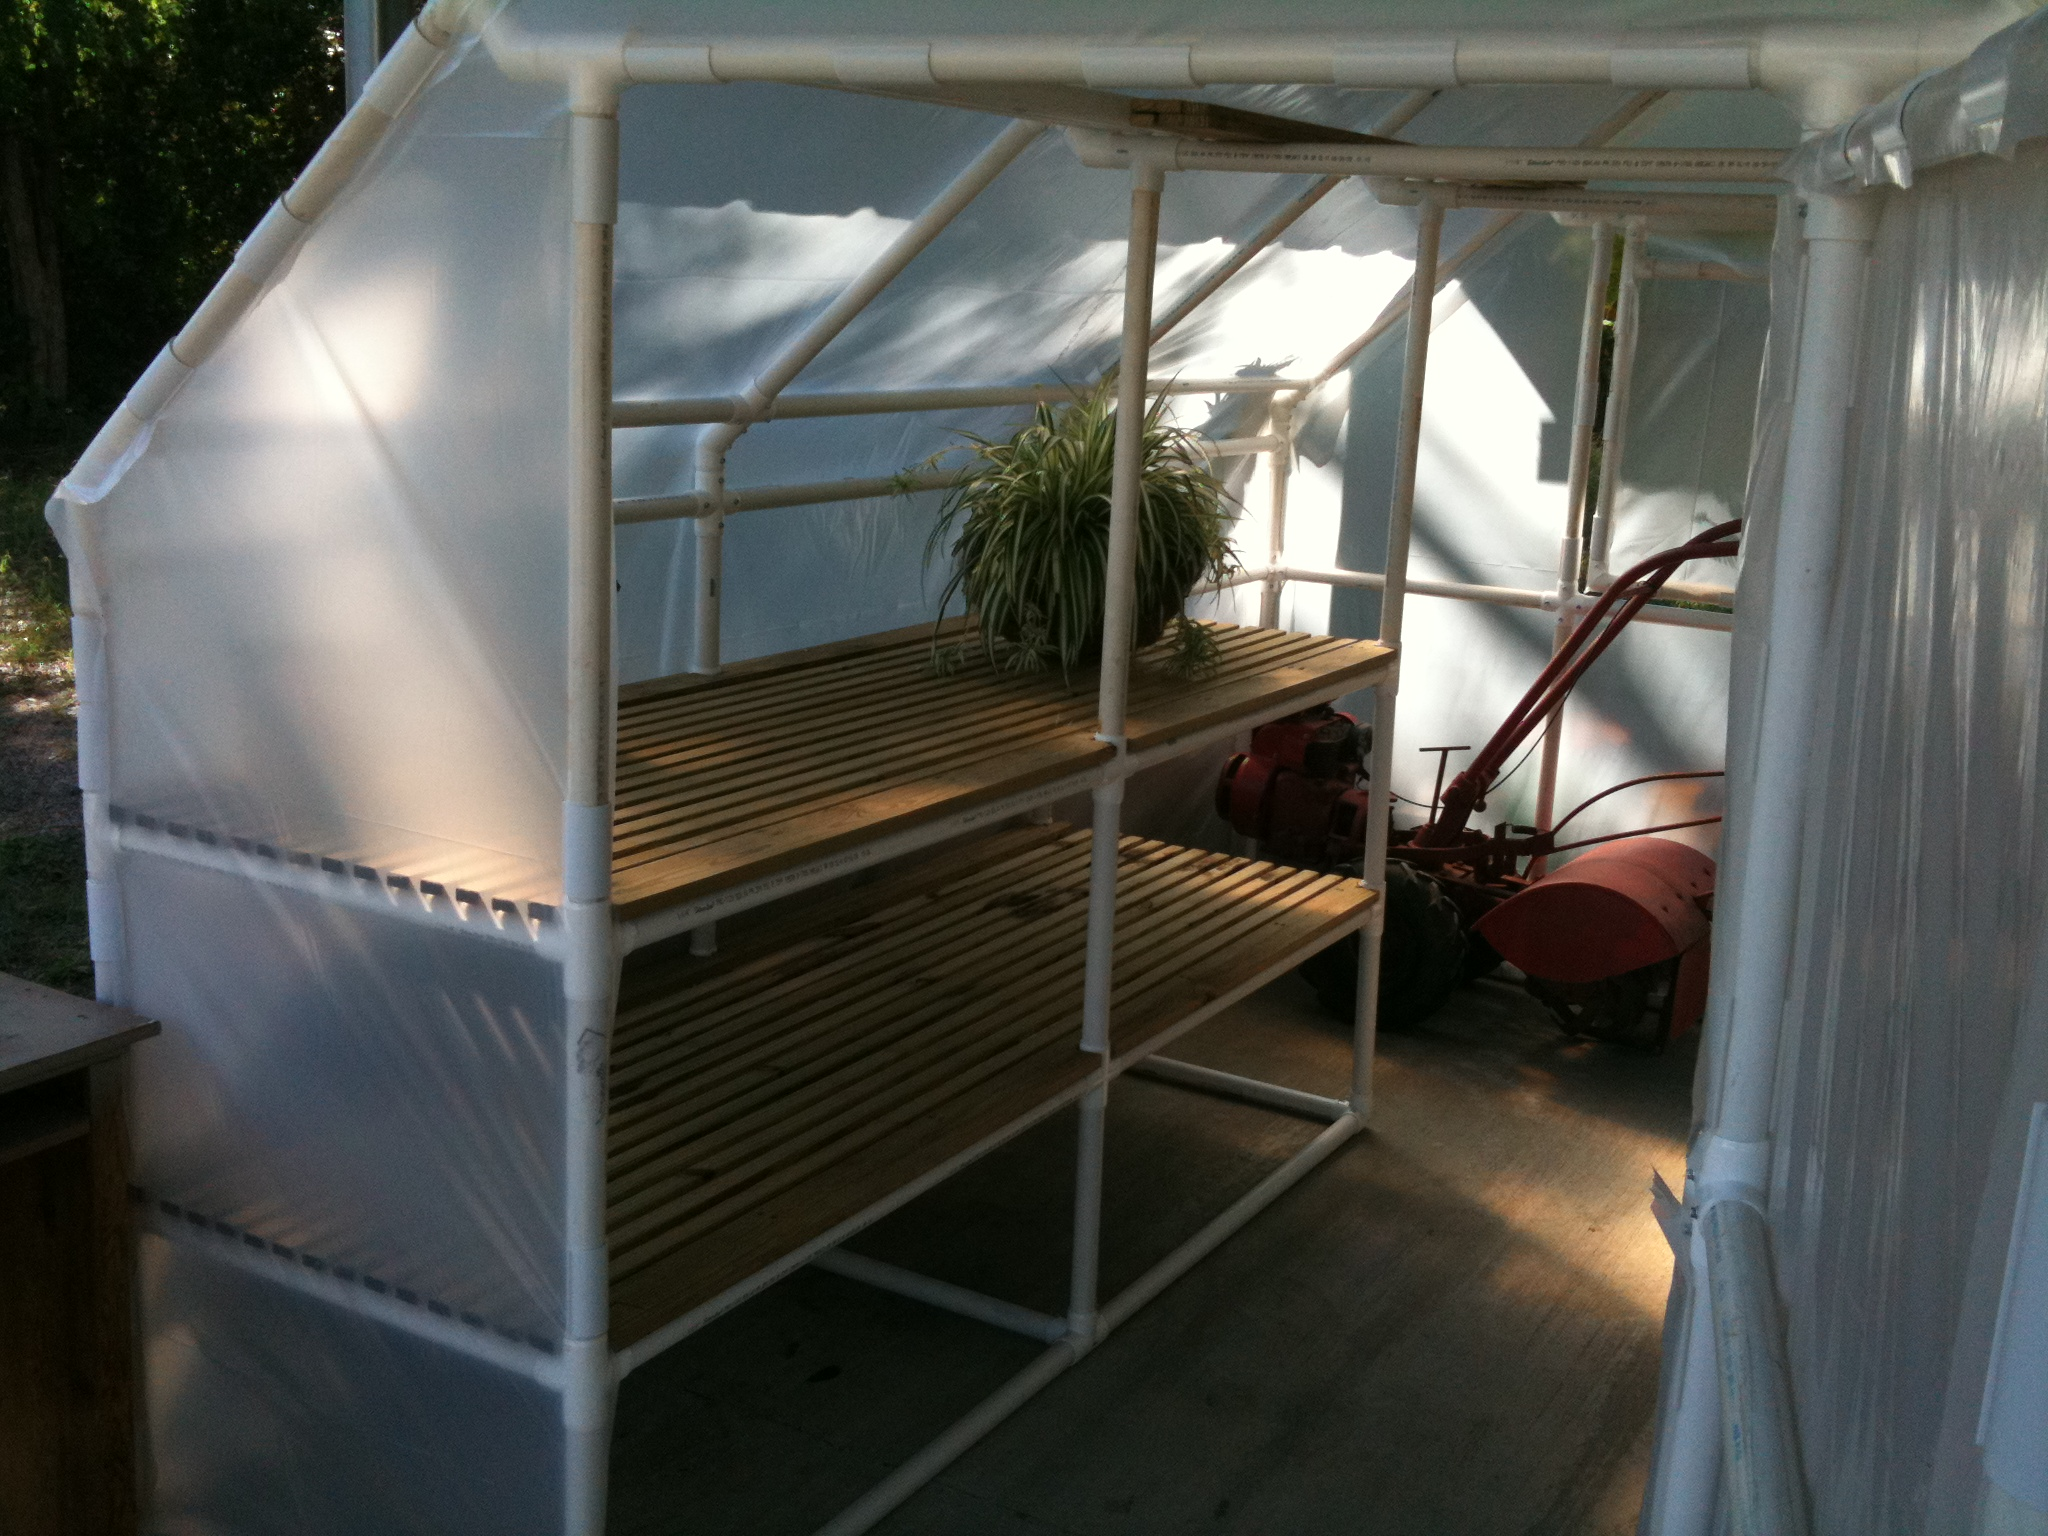 20 inspiring pvc pipe projects for gardeners the self sufficient pvc greenhouse solutioingenieria Image collections